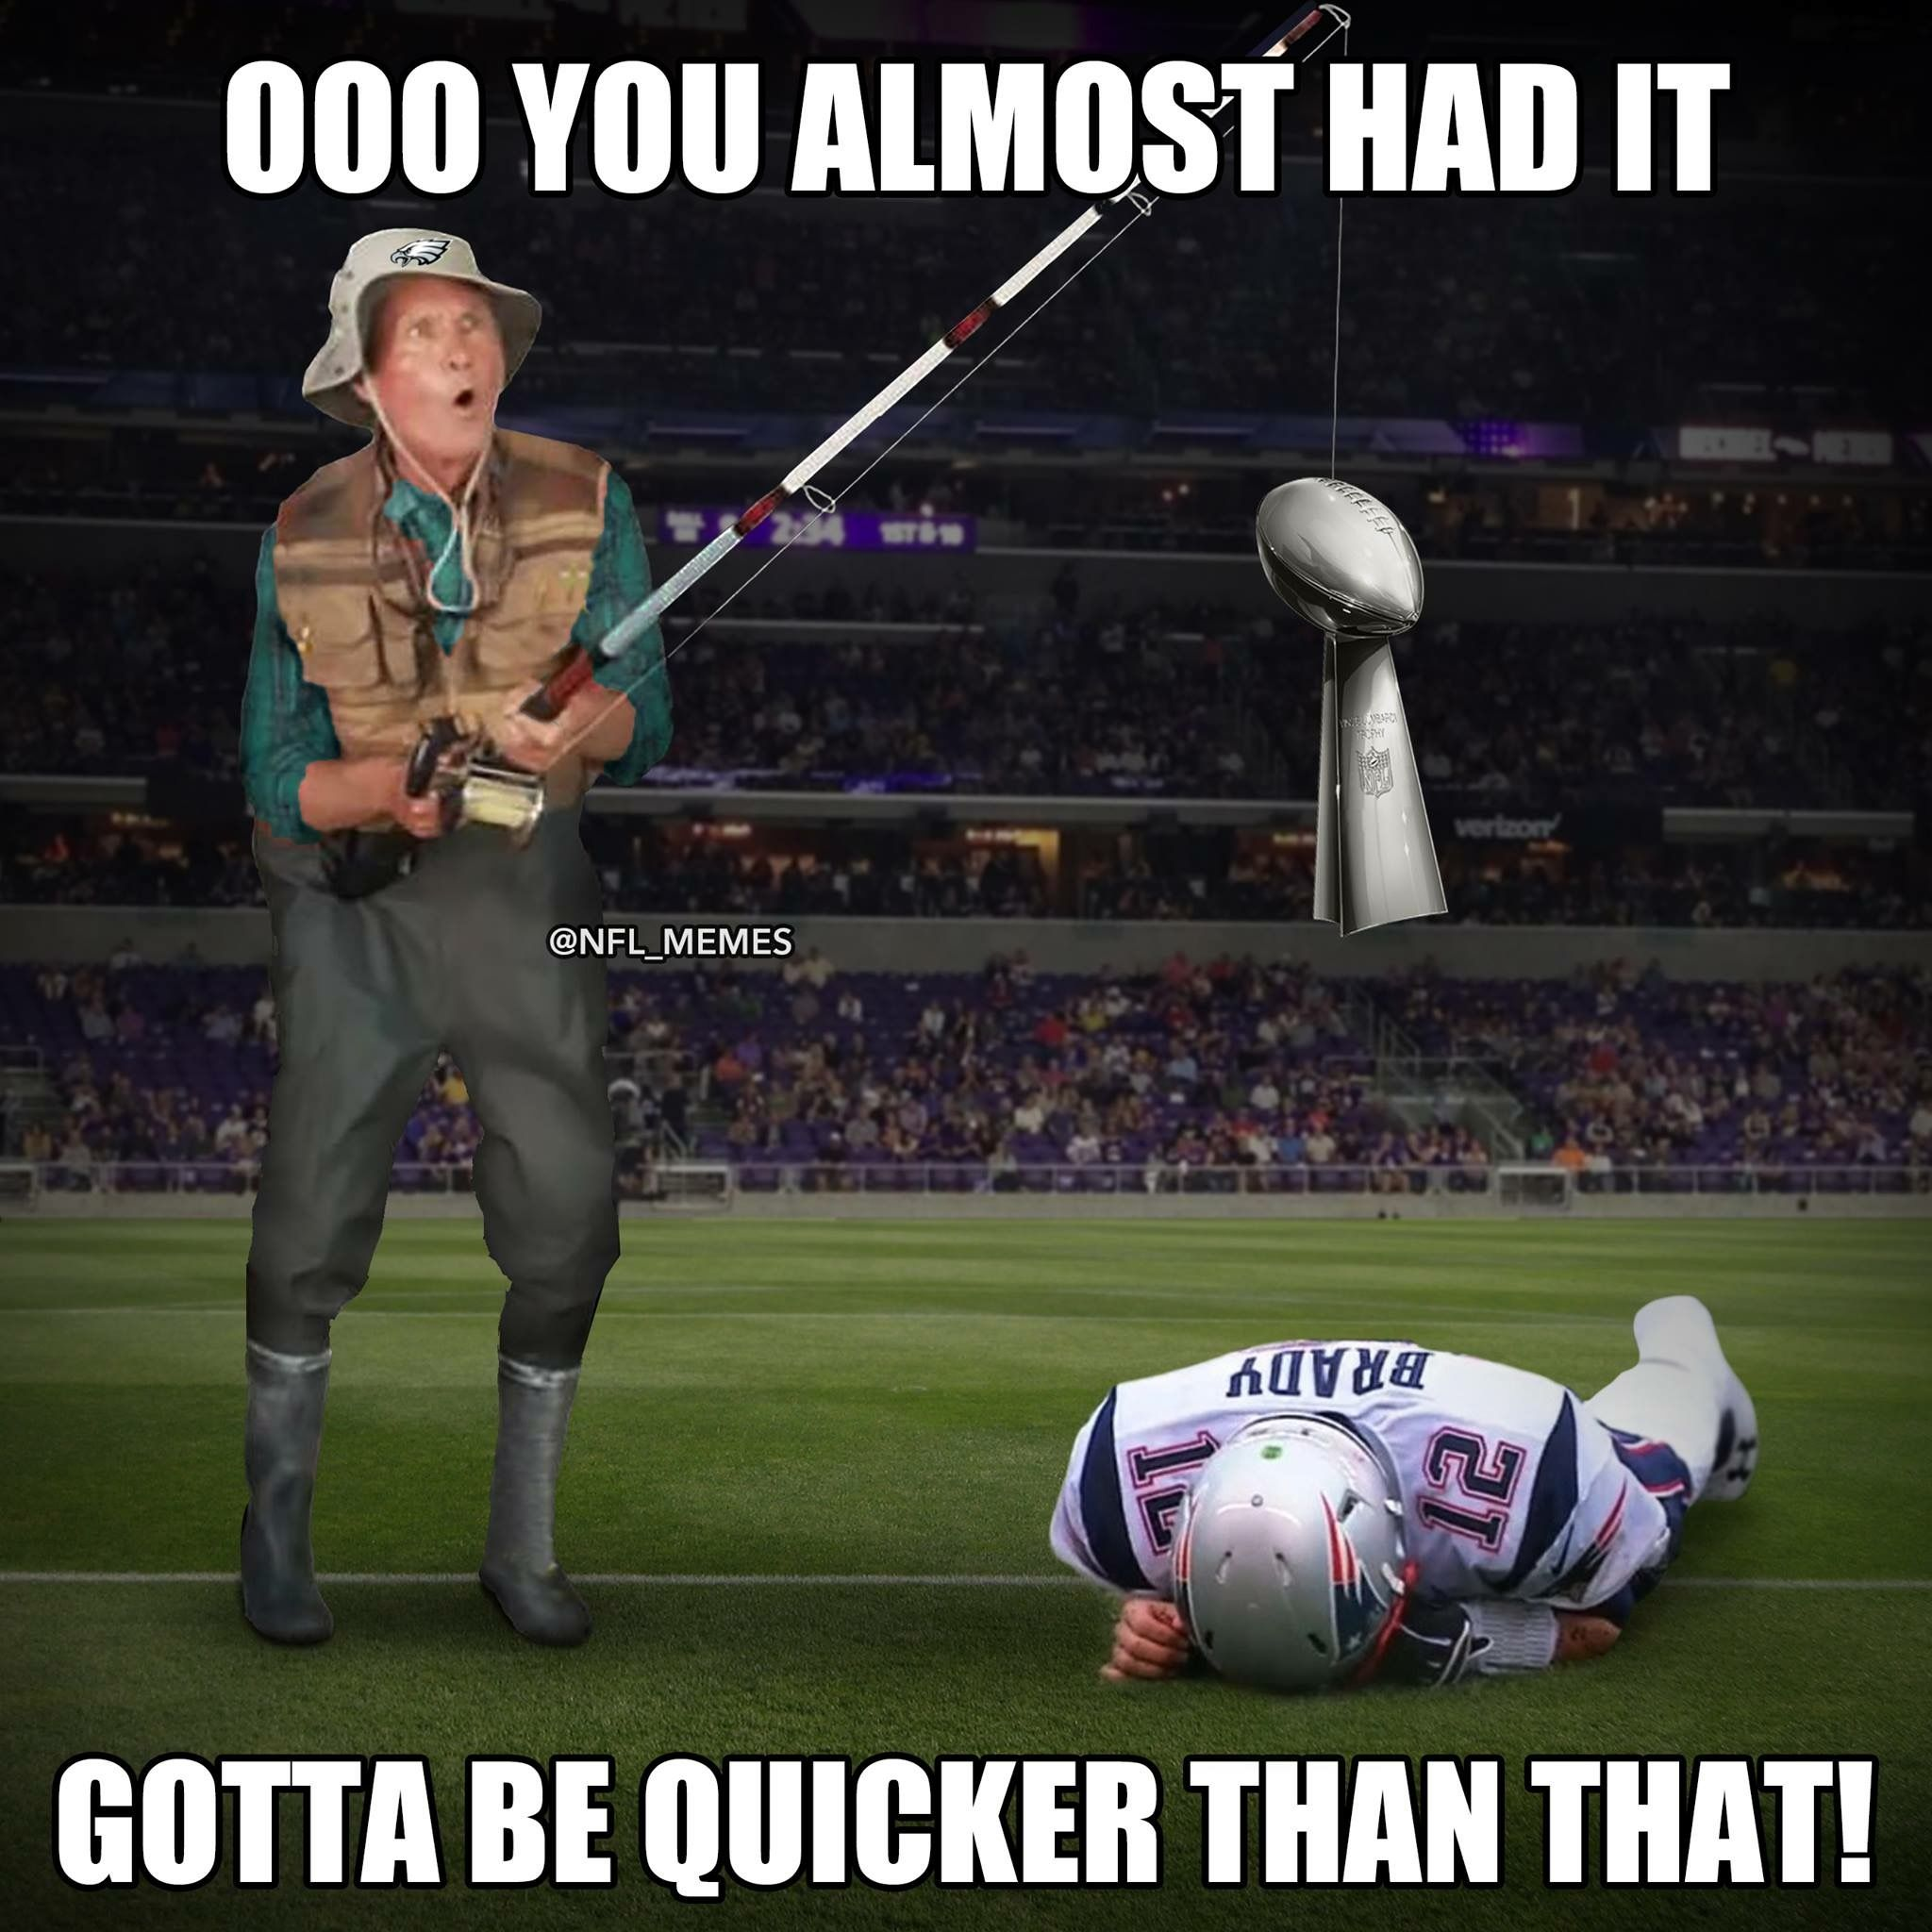 Pin By Annarose Rubright On Things I Like Funny Football Memes Nfl Funny Funny Sports Memes